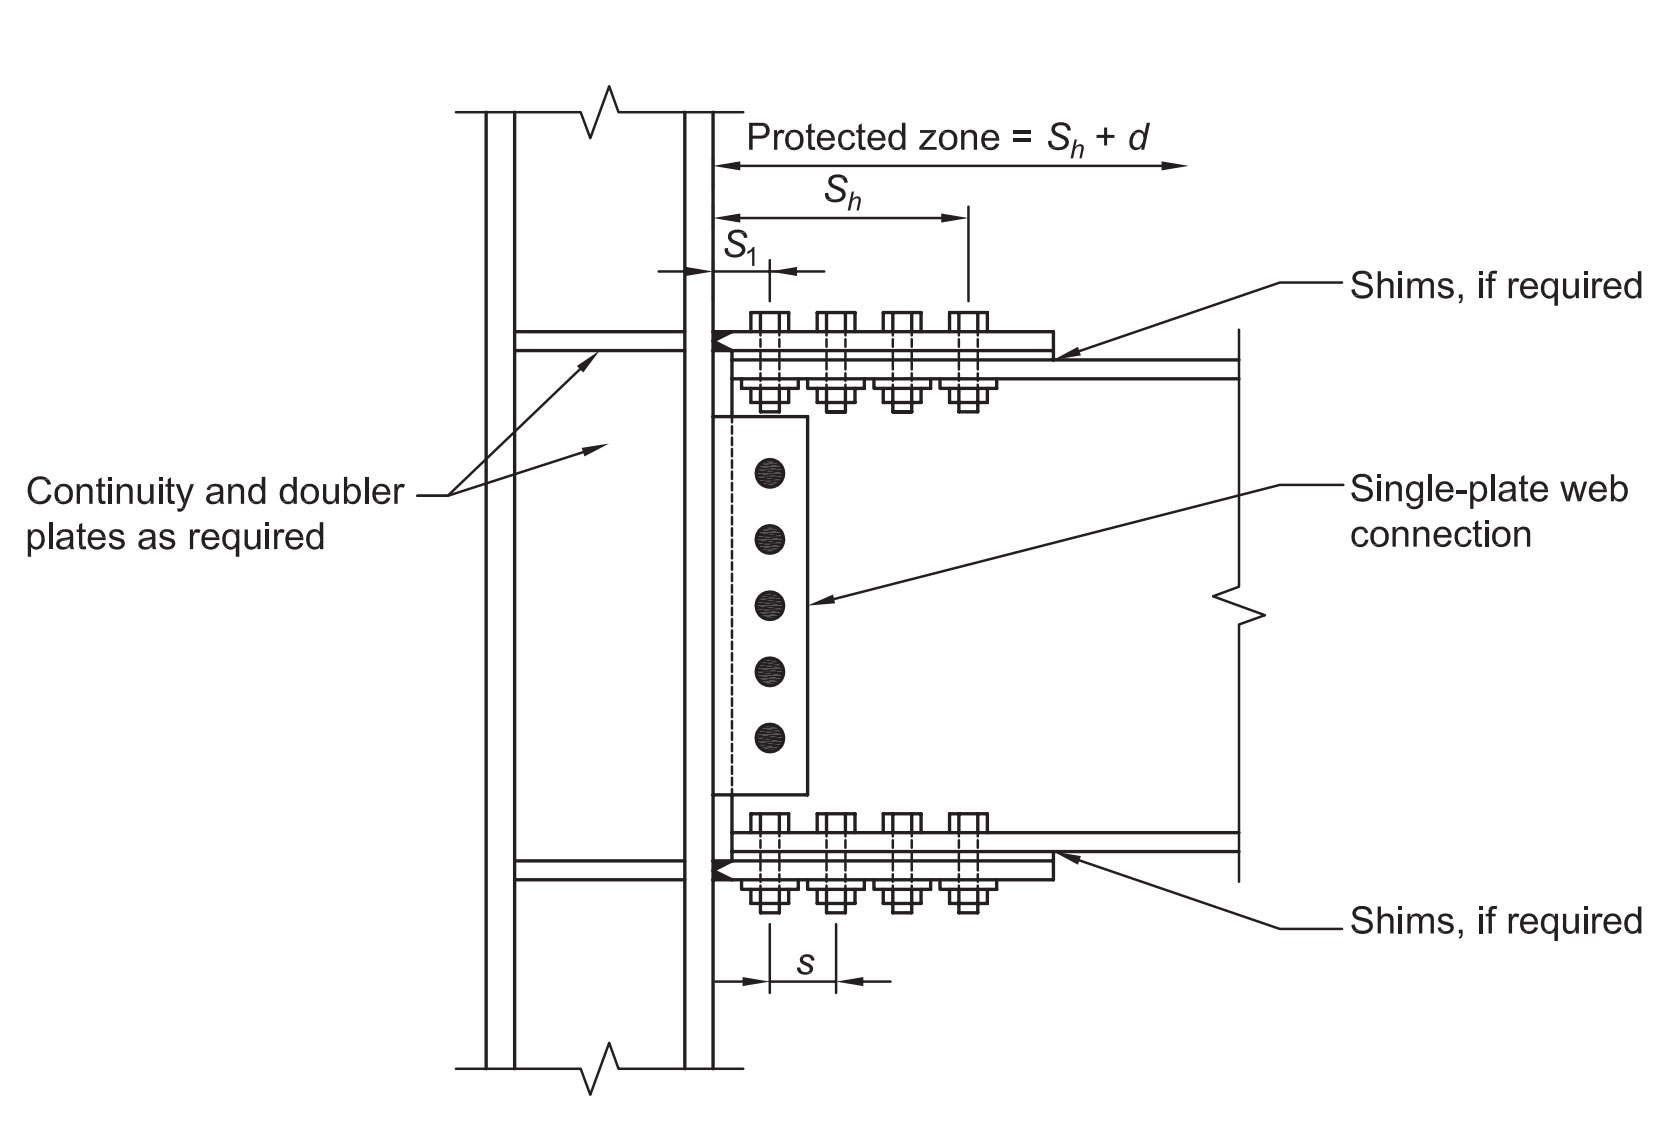 After the 1994 Northridge earthquake, new building standards were established for connecting steel beams. Pictured above are different types of connections approved by the American Institute of Steel Construction to better weather seismic shaking.